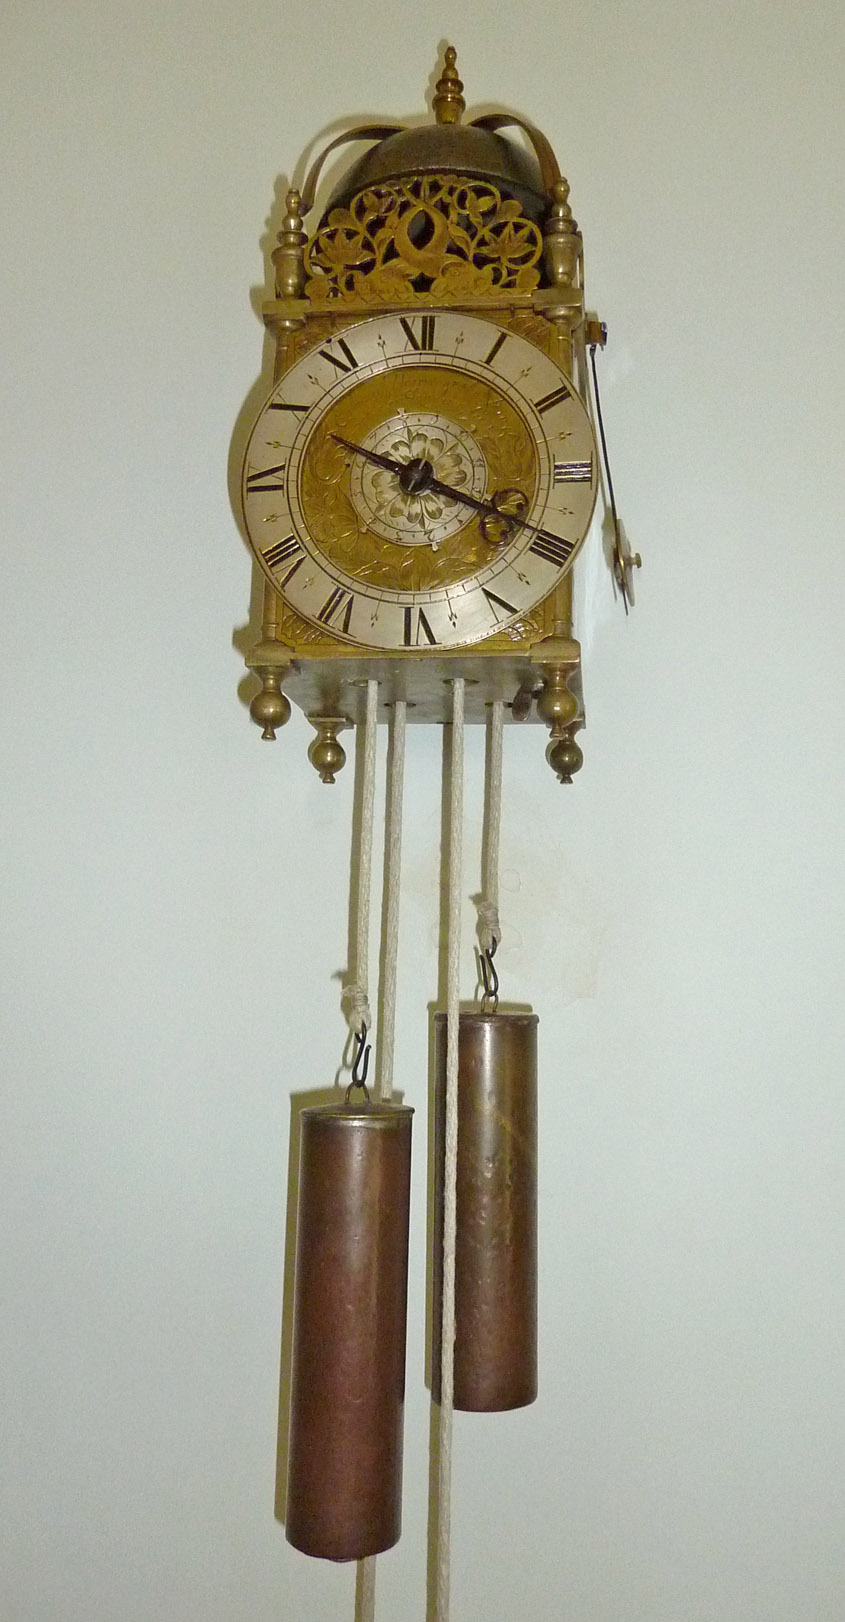 Lantern Clock at Woodford